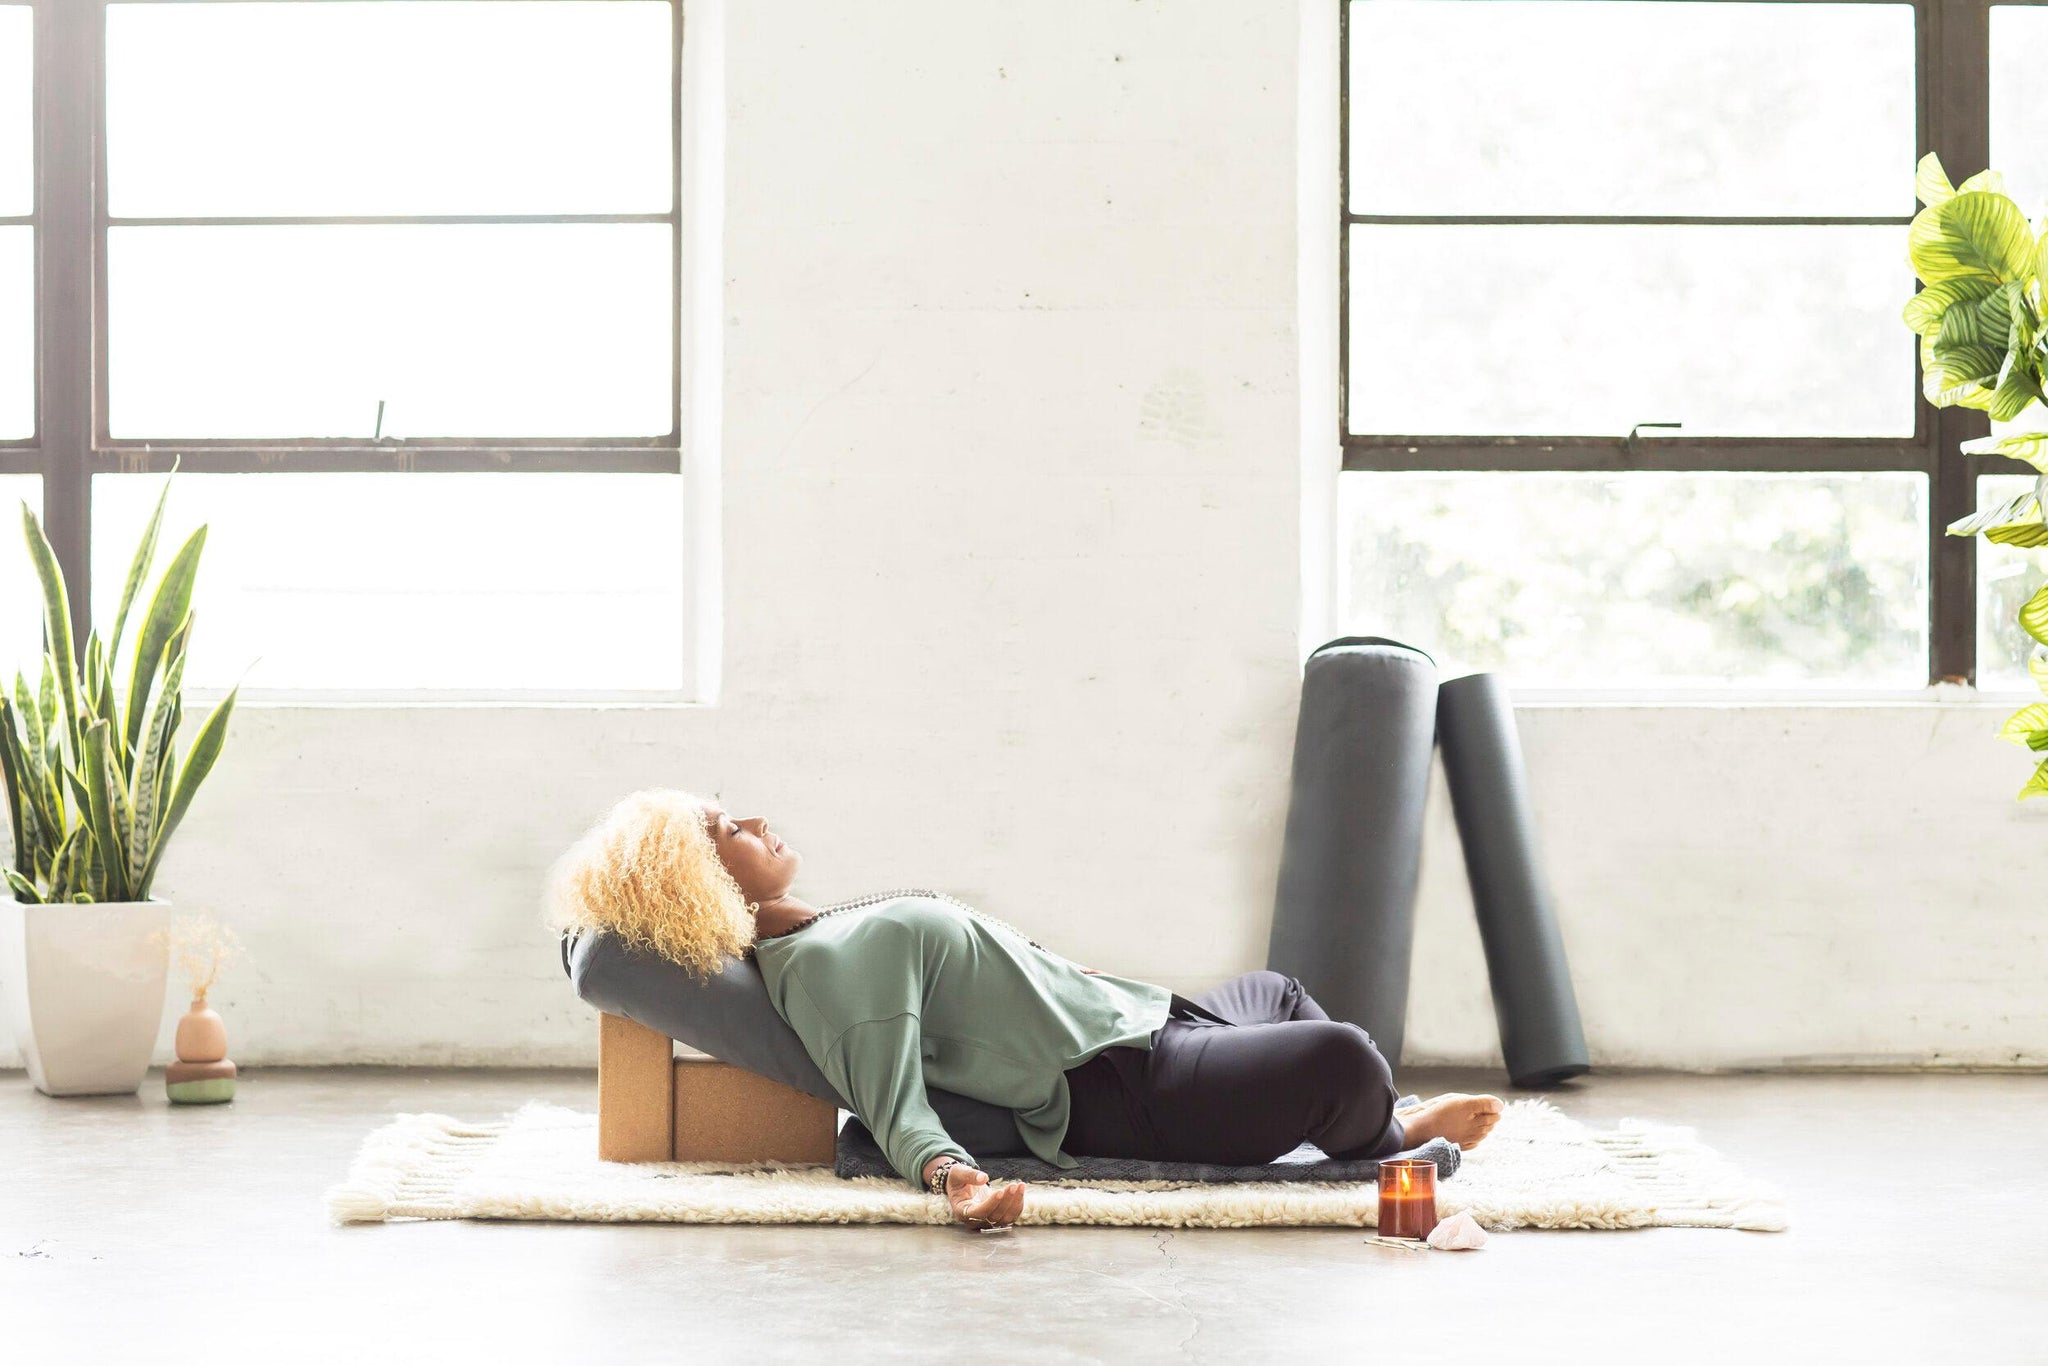 Restorative Yoga: The Power of Slowing Down